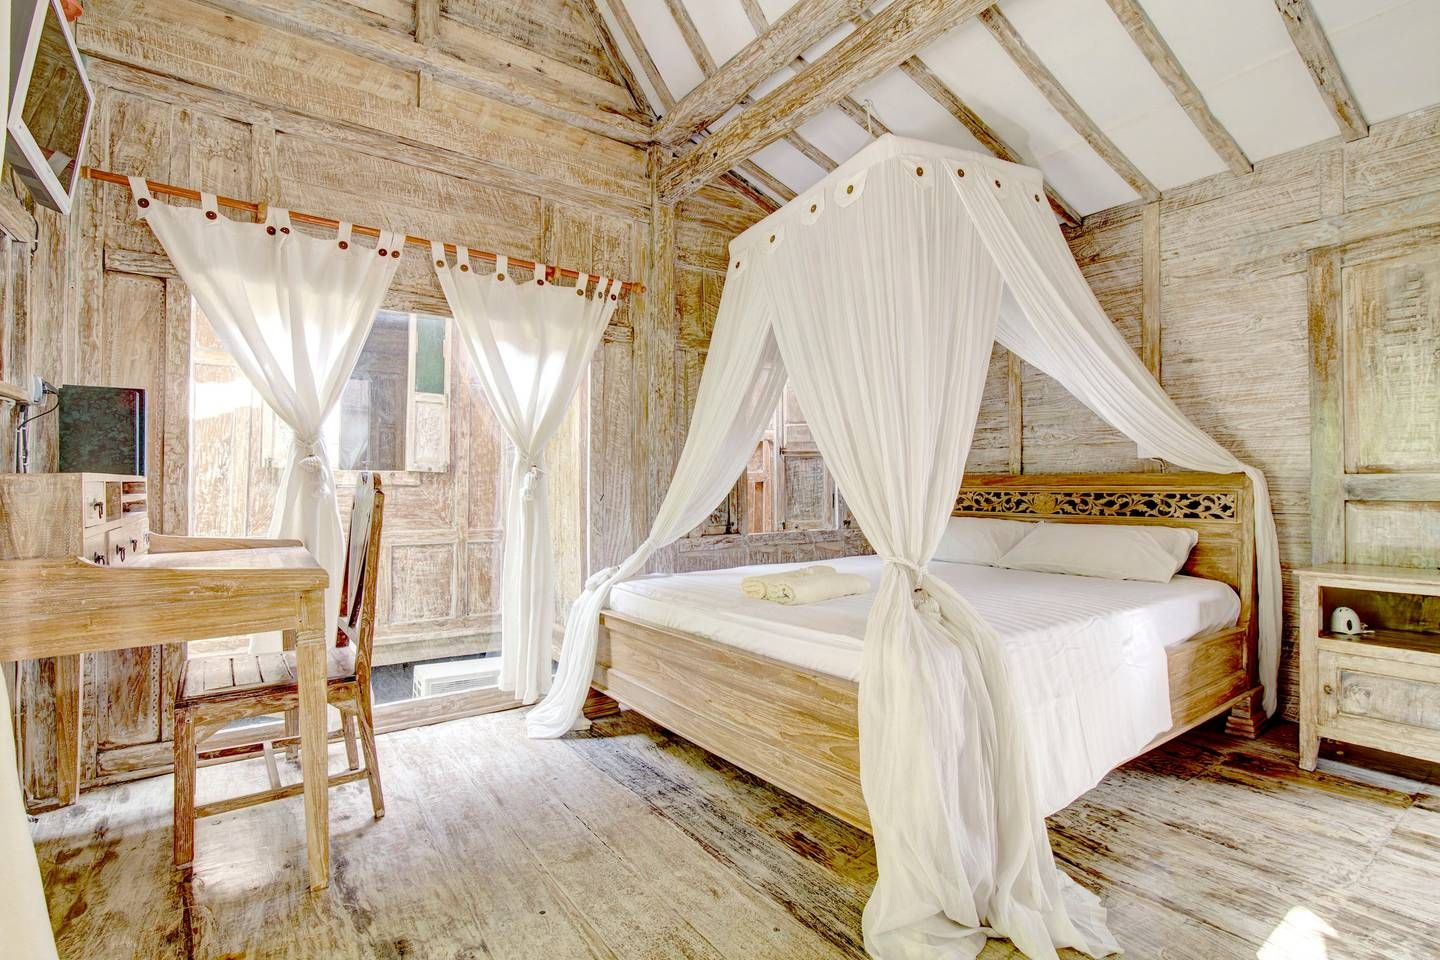 Antique Garden Cabins With Heart 3 Cabins For Rent In Denpasar Bali Indonesia Garden Cabins Home Wooden Cottage